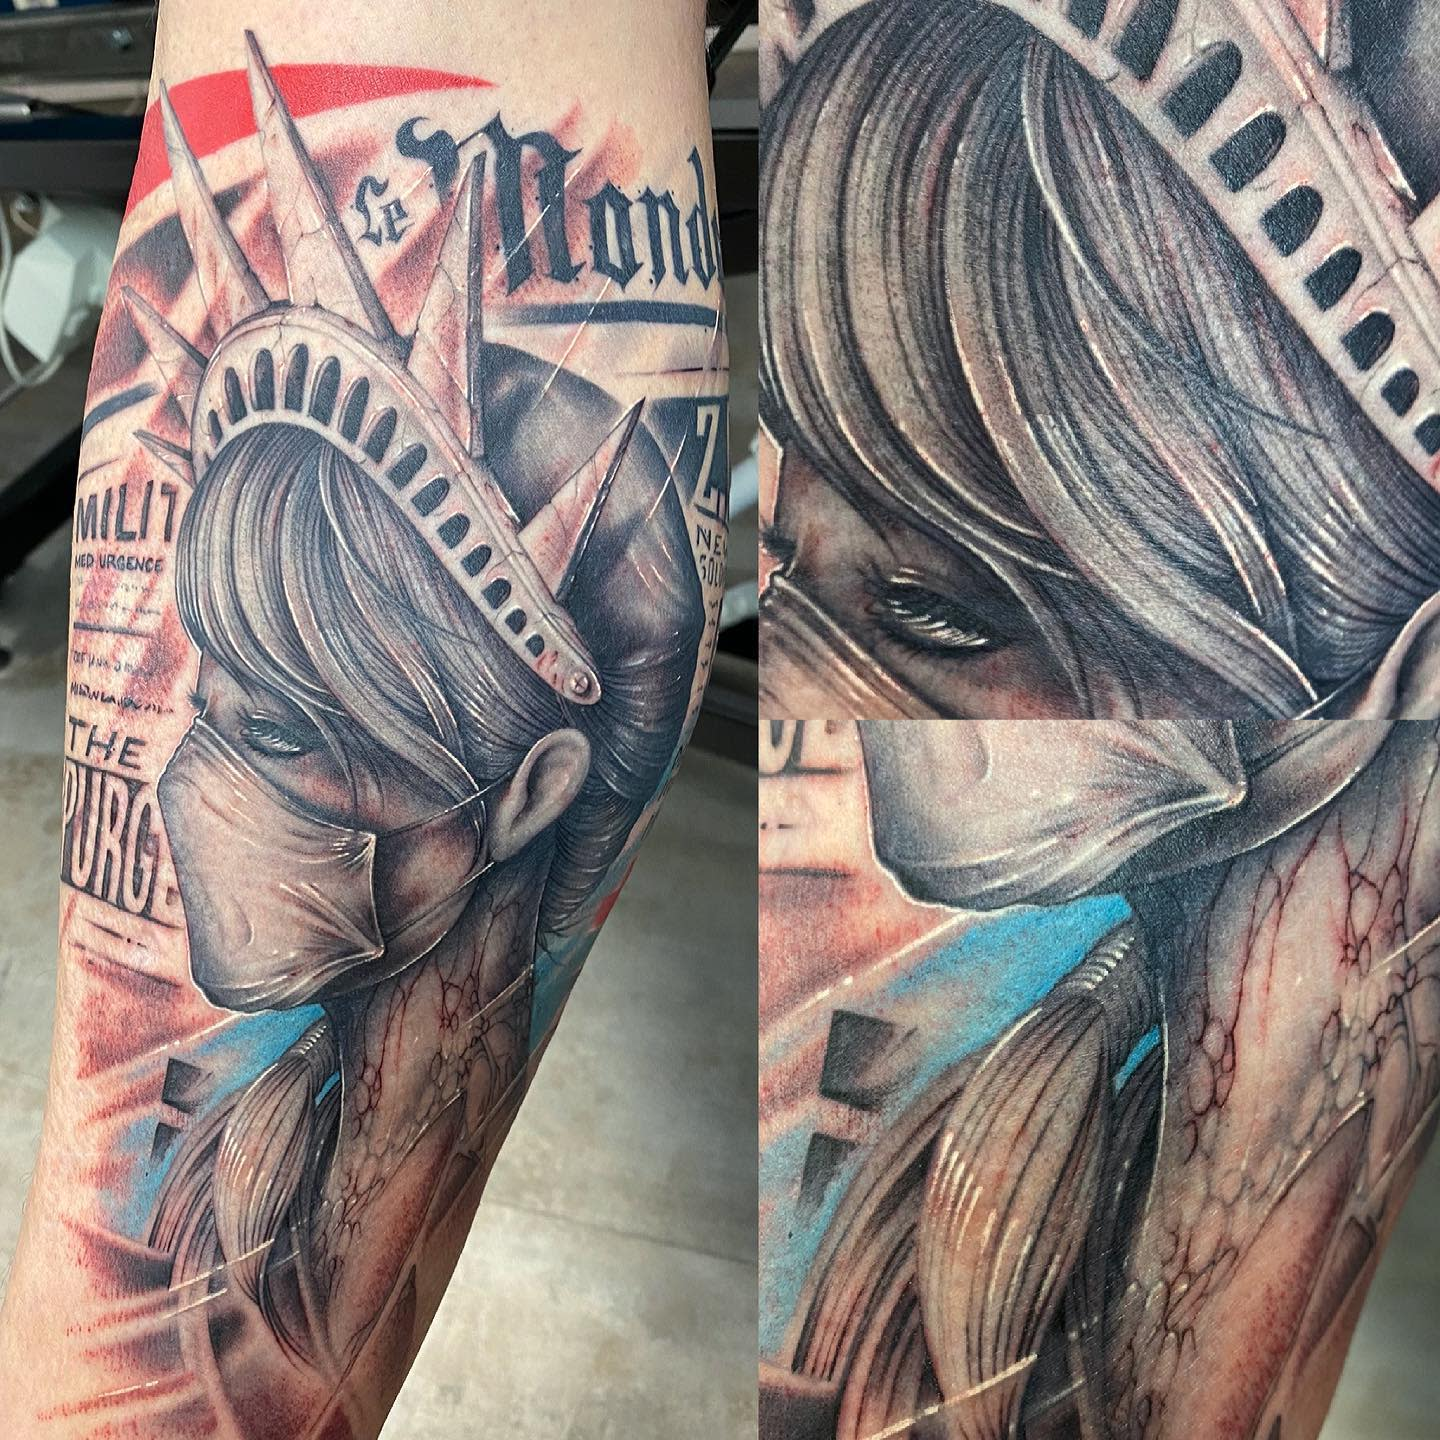 Facemask COVID Tattoo -medtattoo